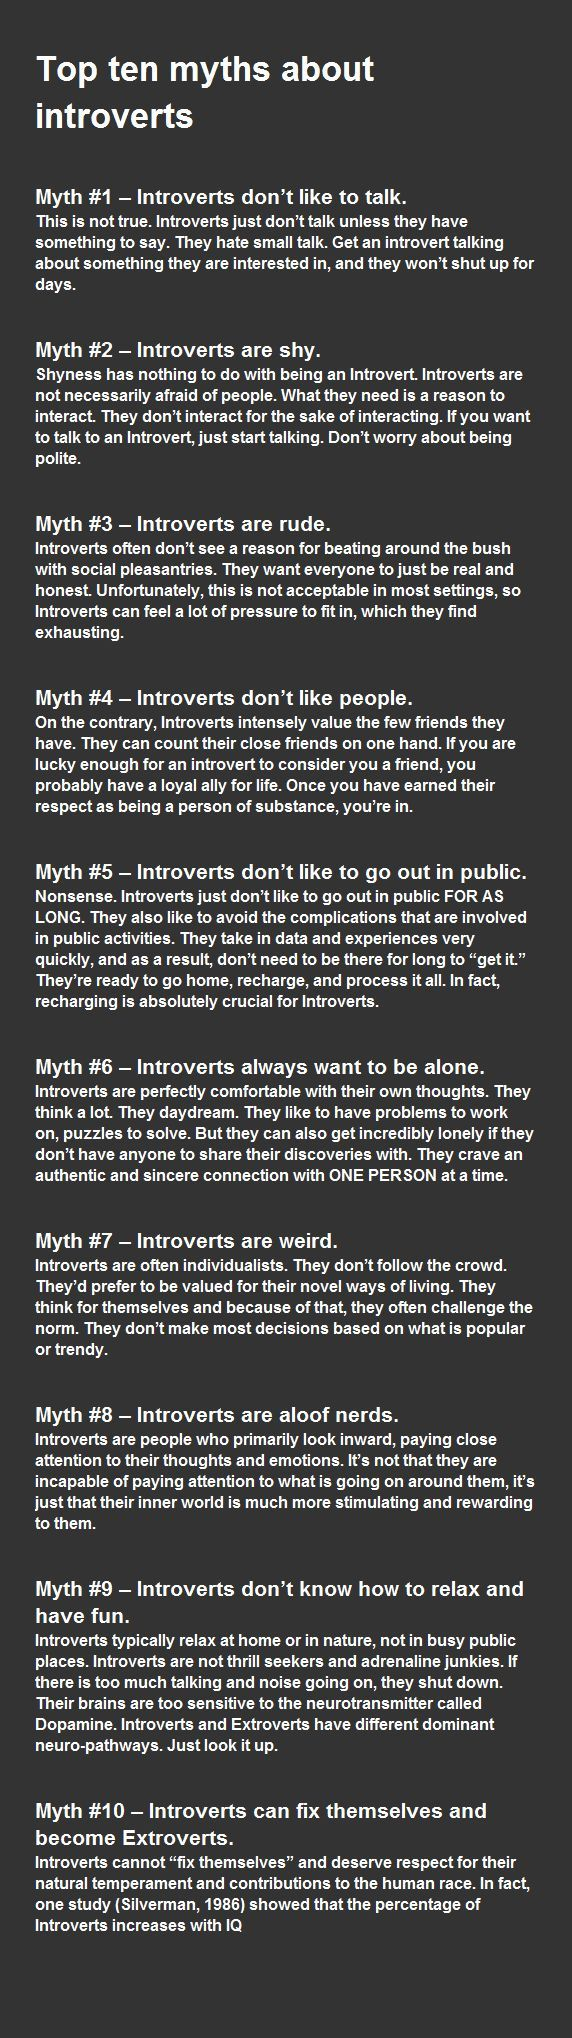 Top Ten Myths About Introverts - #Introvert, #Introverts, #Myths